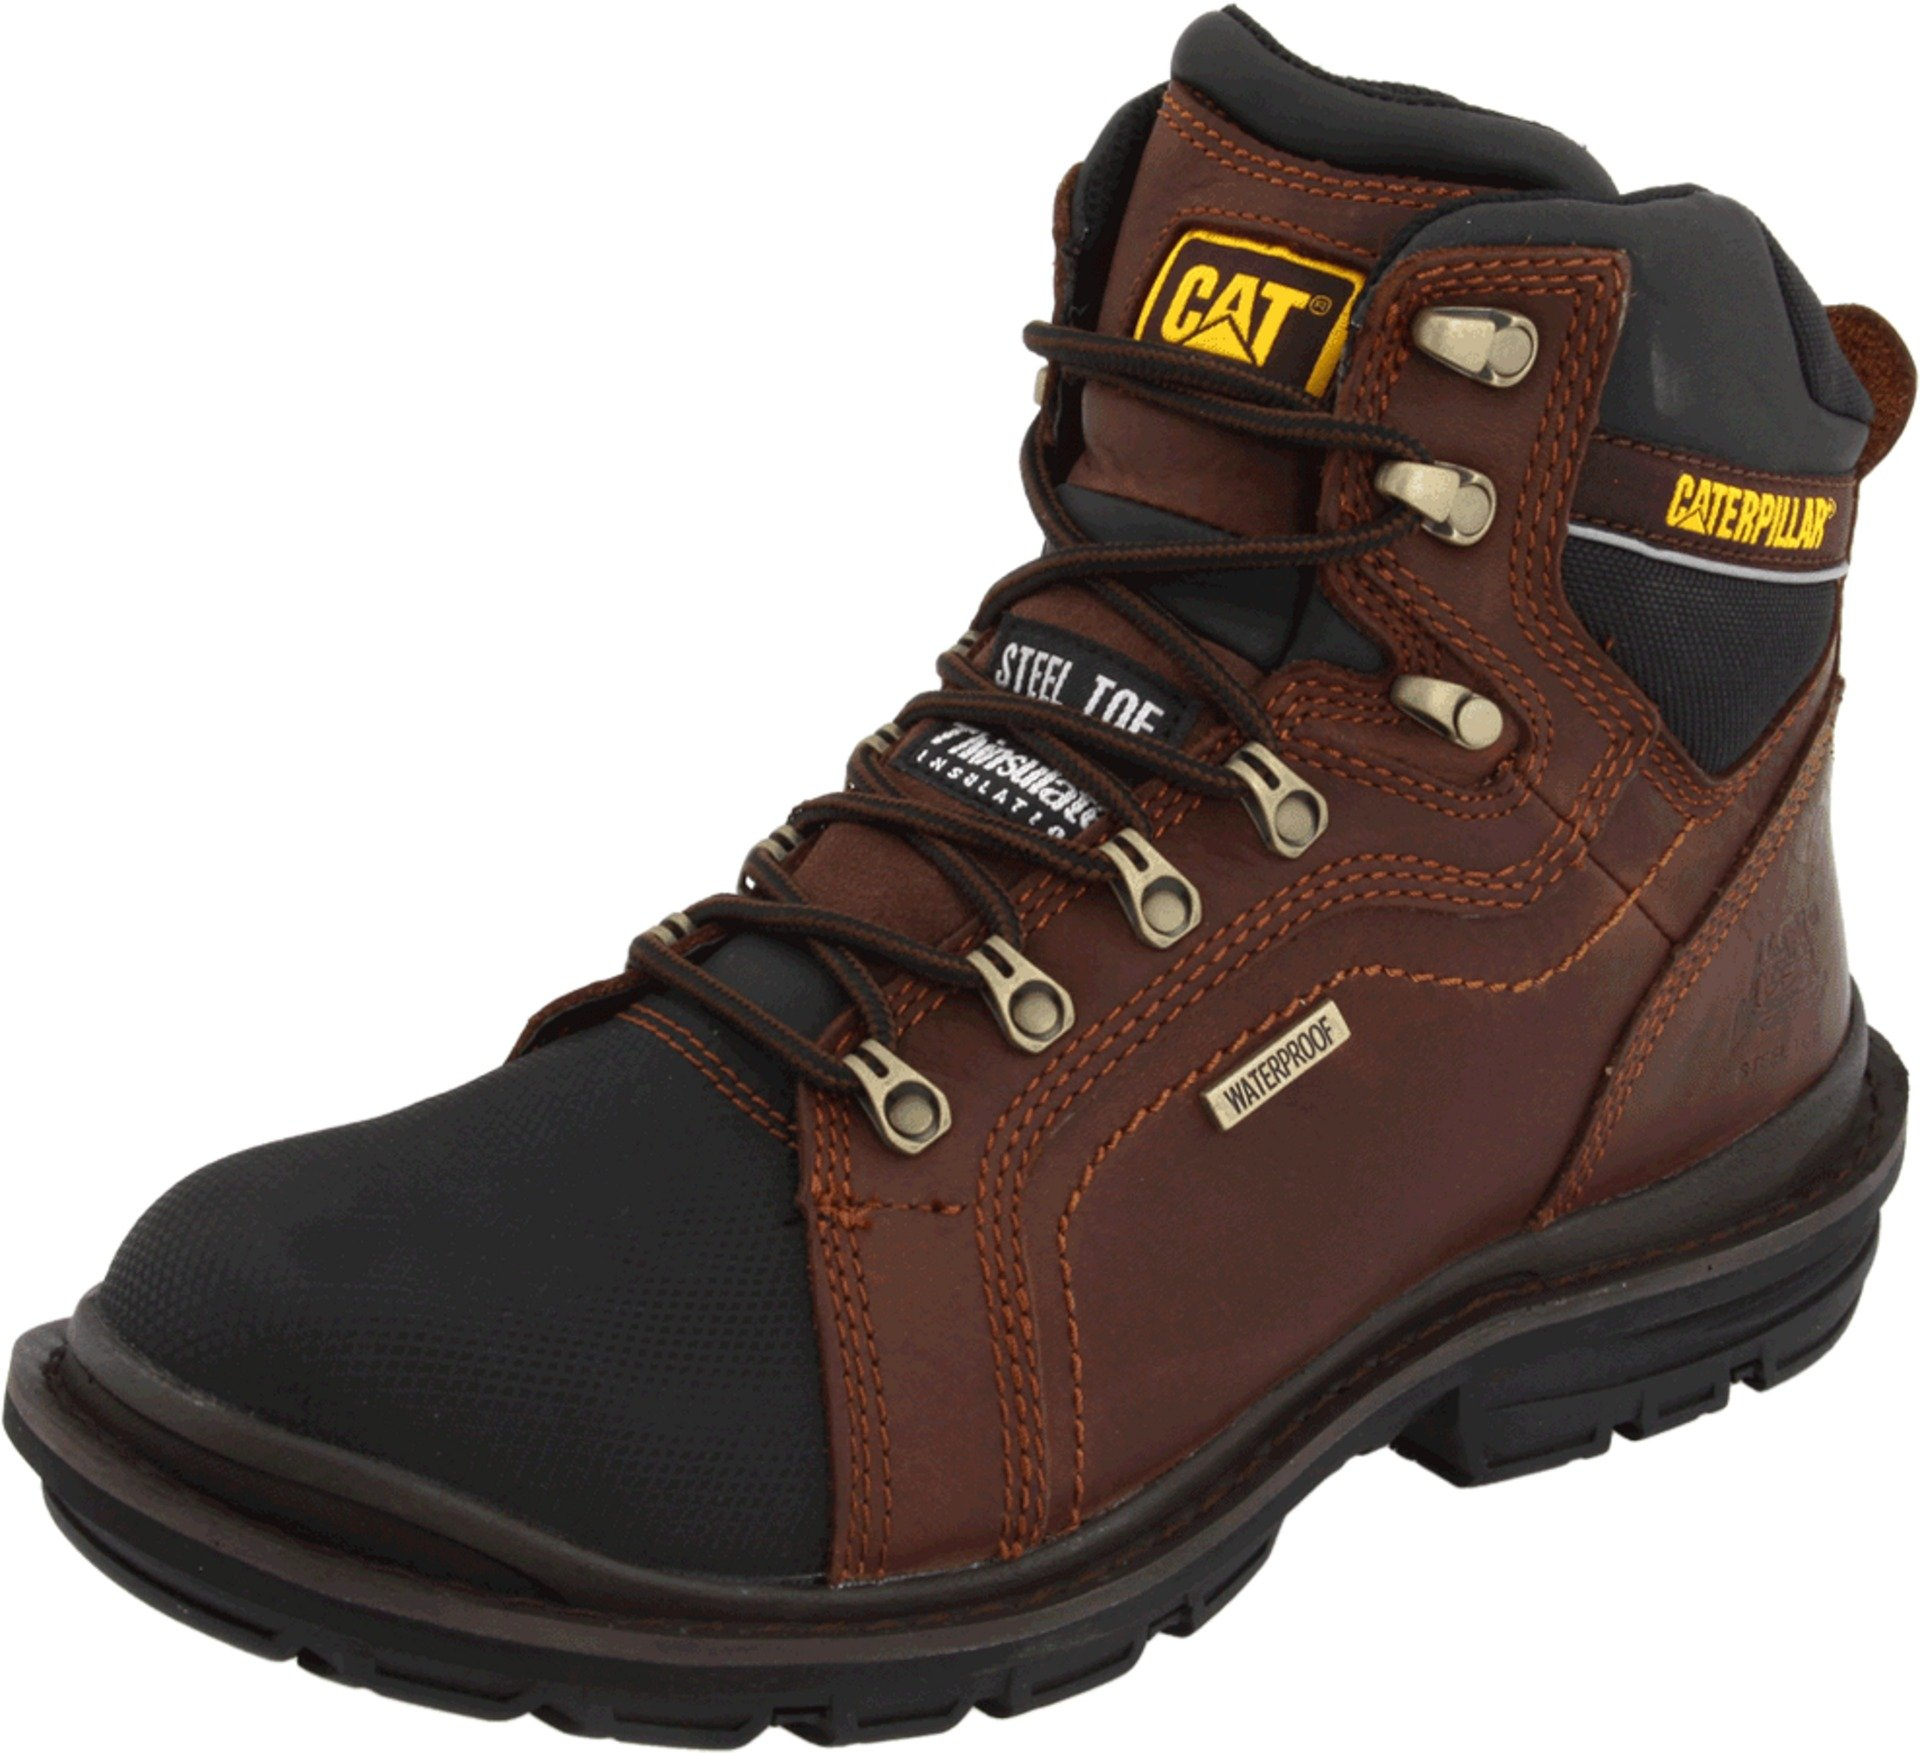 Caterpillar Men's Manifold Tough Waterproof Boot,Oak,7.5 W US